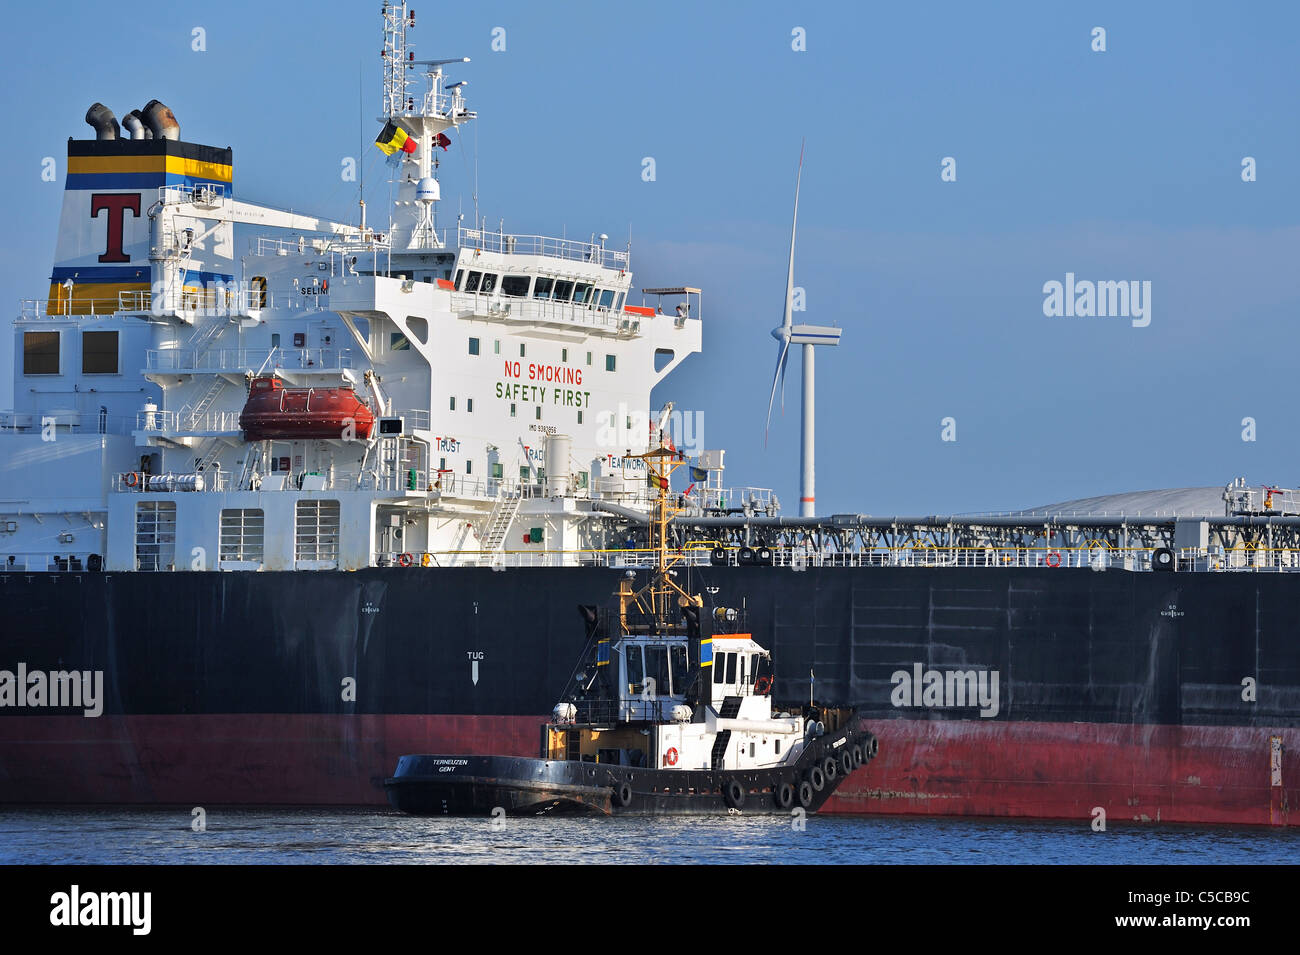 Tugboat and tanker in the Ghent harbour, Belgium - Stock Image